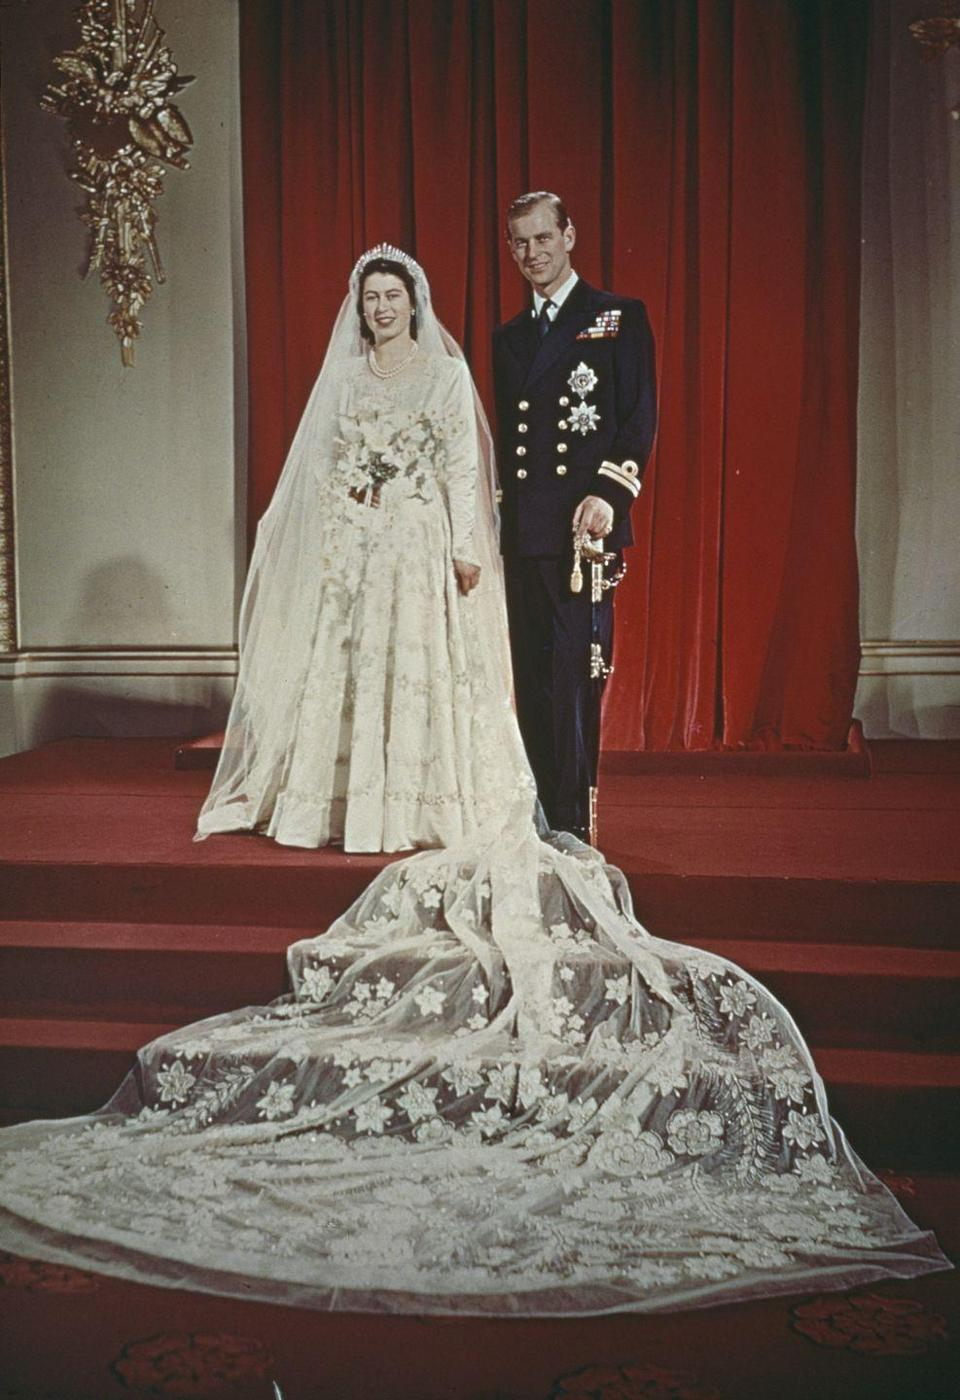 """<p>At just 21 years old, Princess Elizabeth said """"I do"""" to the newly-dubbed Prince Philip, Duke of Edinburgh, at Westminster Abbey on November 20. She wore a gown designed by Norman Hartnell. It was a great celebration for the country, still reeling from the aftermath of World War II, which ended just two years before. After the nuptials, they honeymooned in Malta, where Philip, 26, was stationed with the Royal Navy.</p>"""